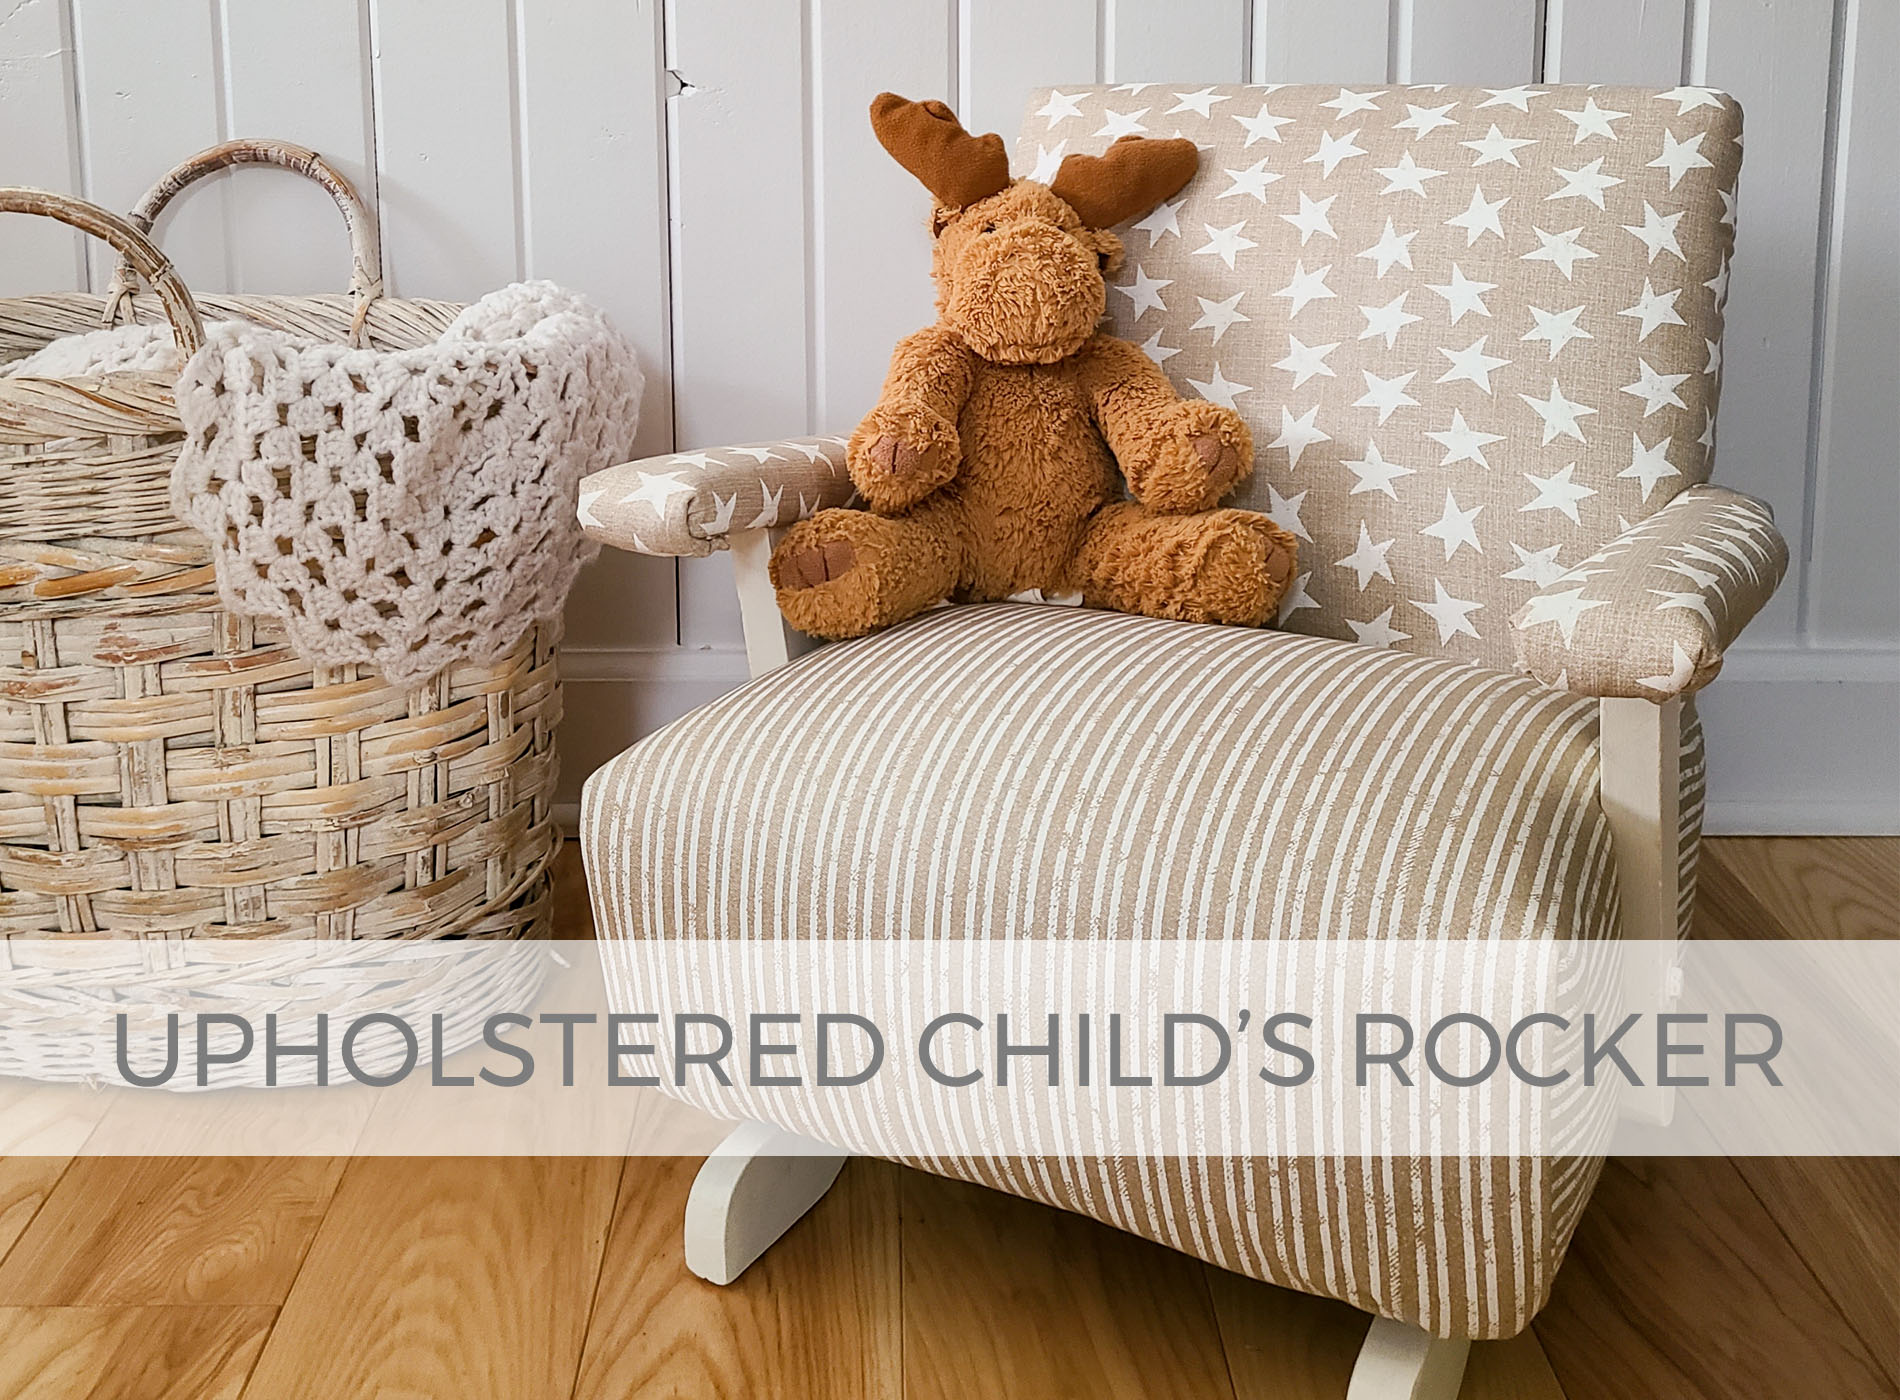 Upholstered Child's Rocker Makeover by Prodigal Pieces | prodigalpieces.com